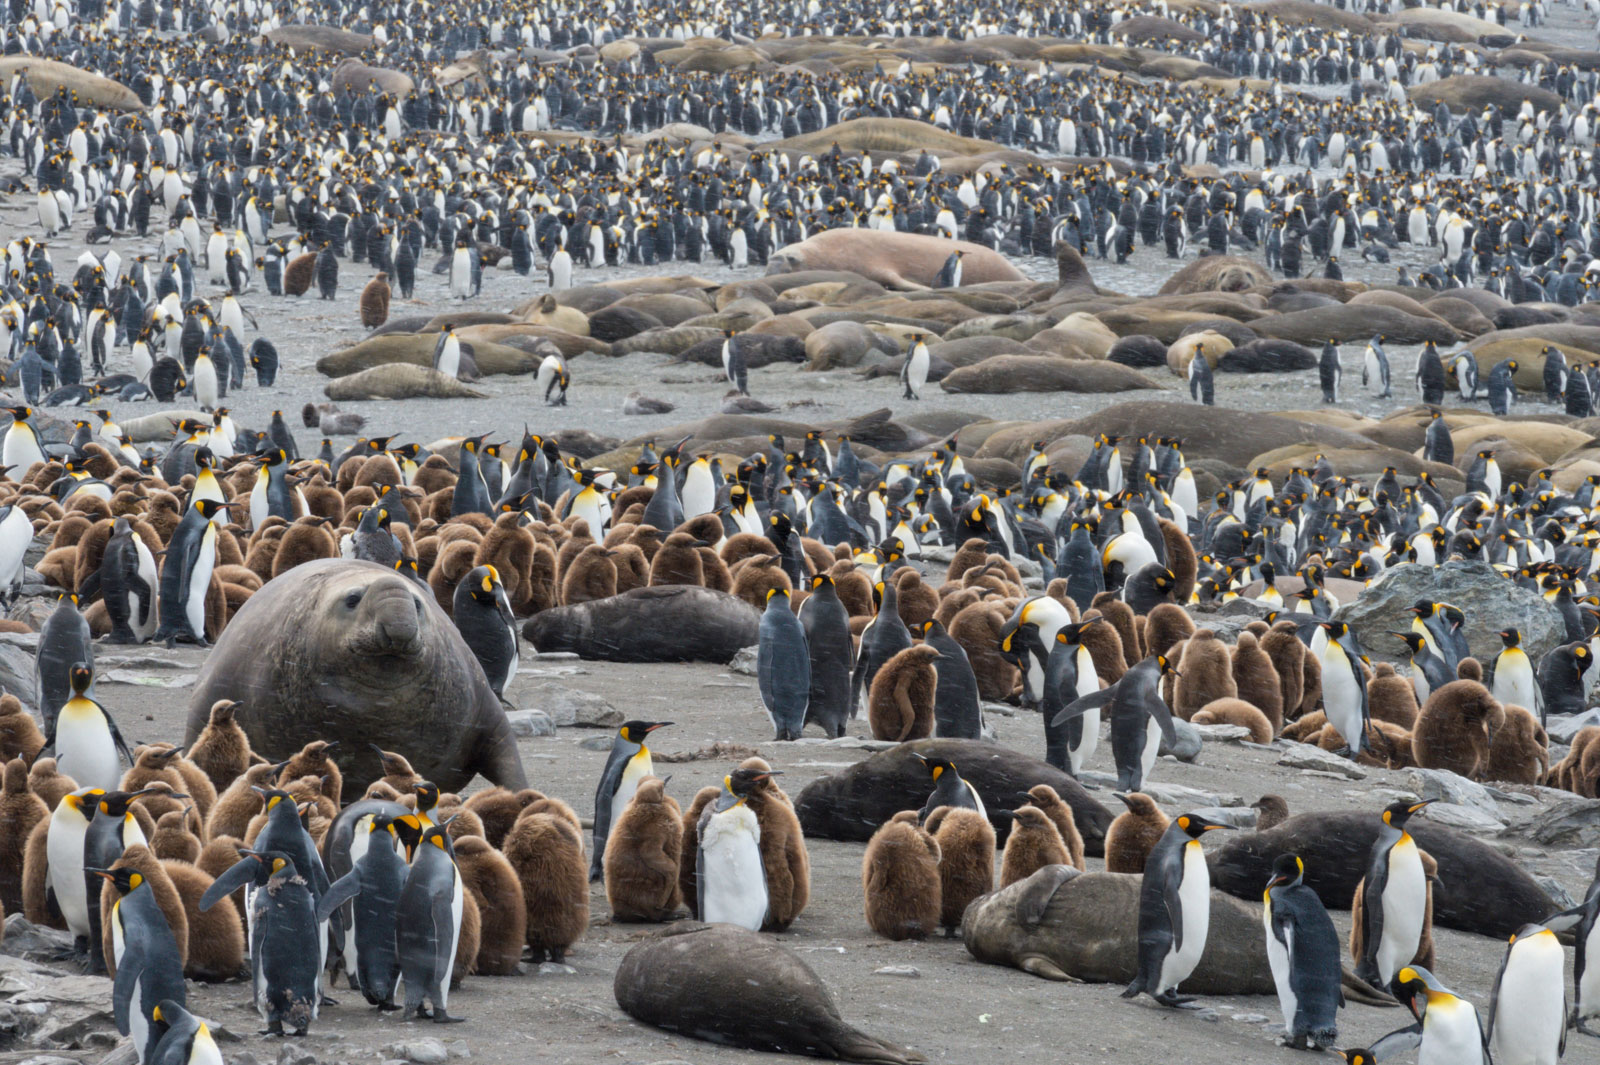 KIng penguins and Southern elephant seals, South Georgia Island